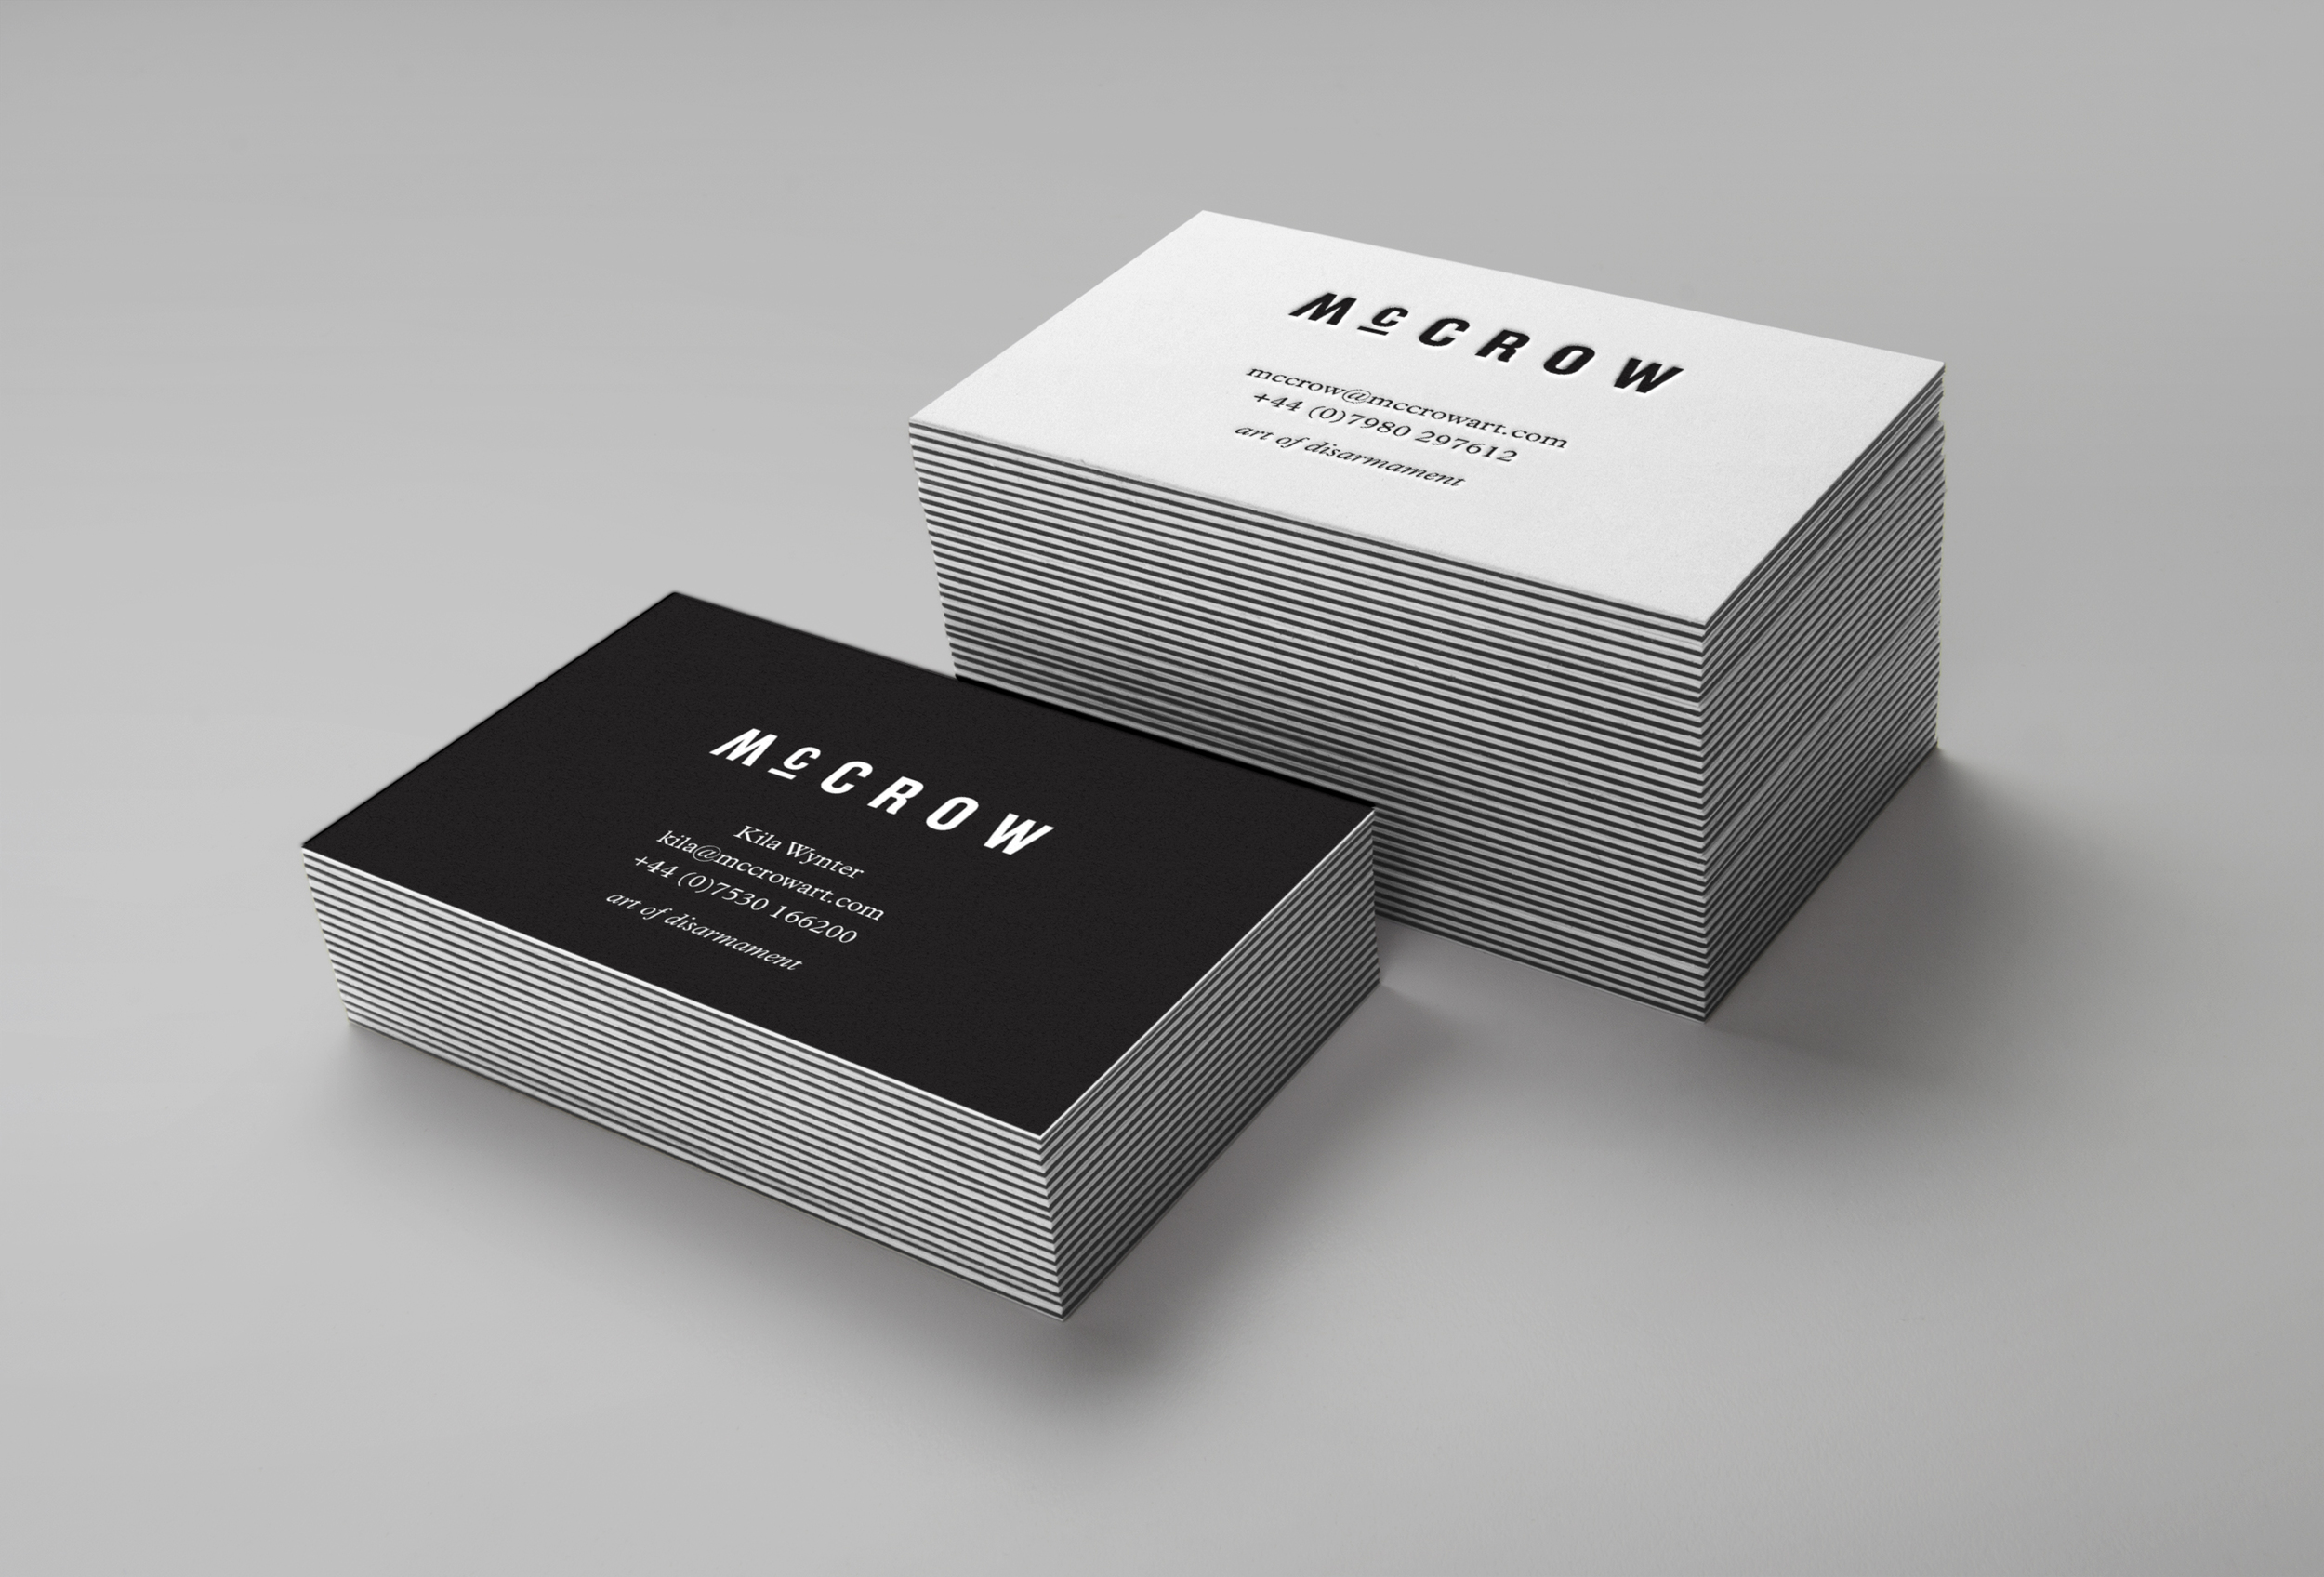 McCrow_business_cards.jpg